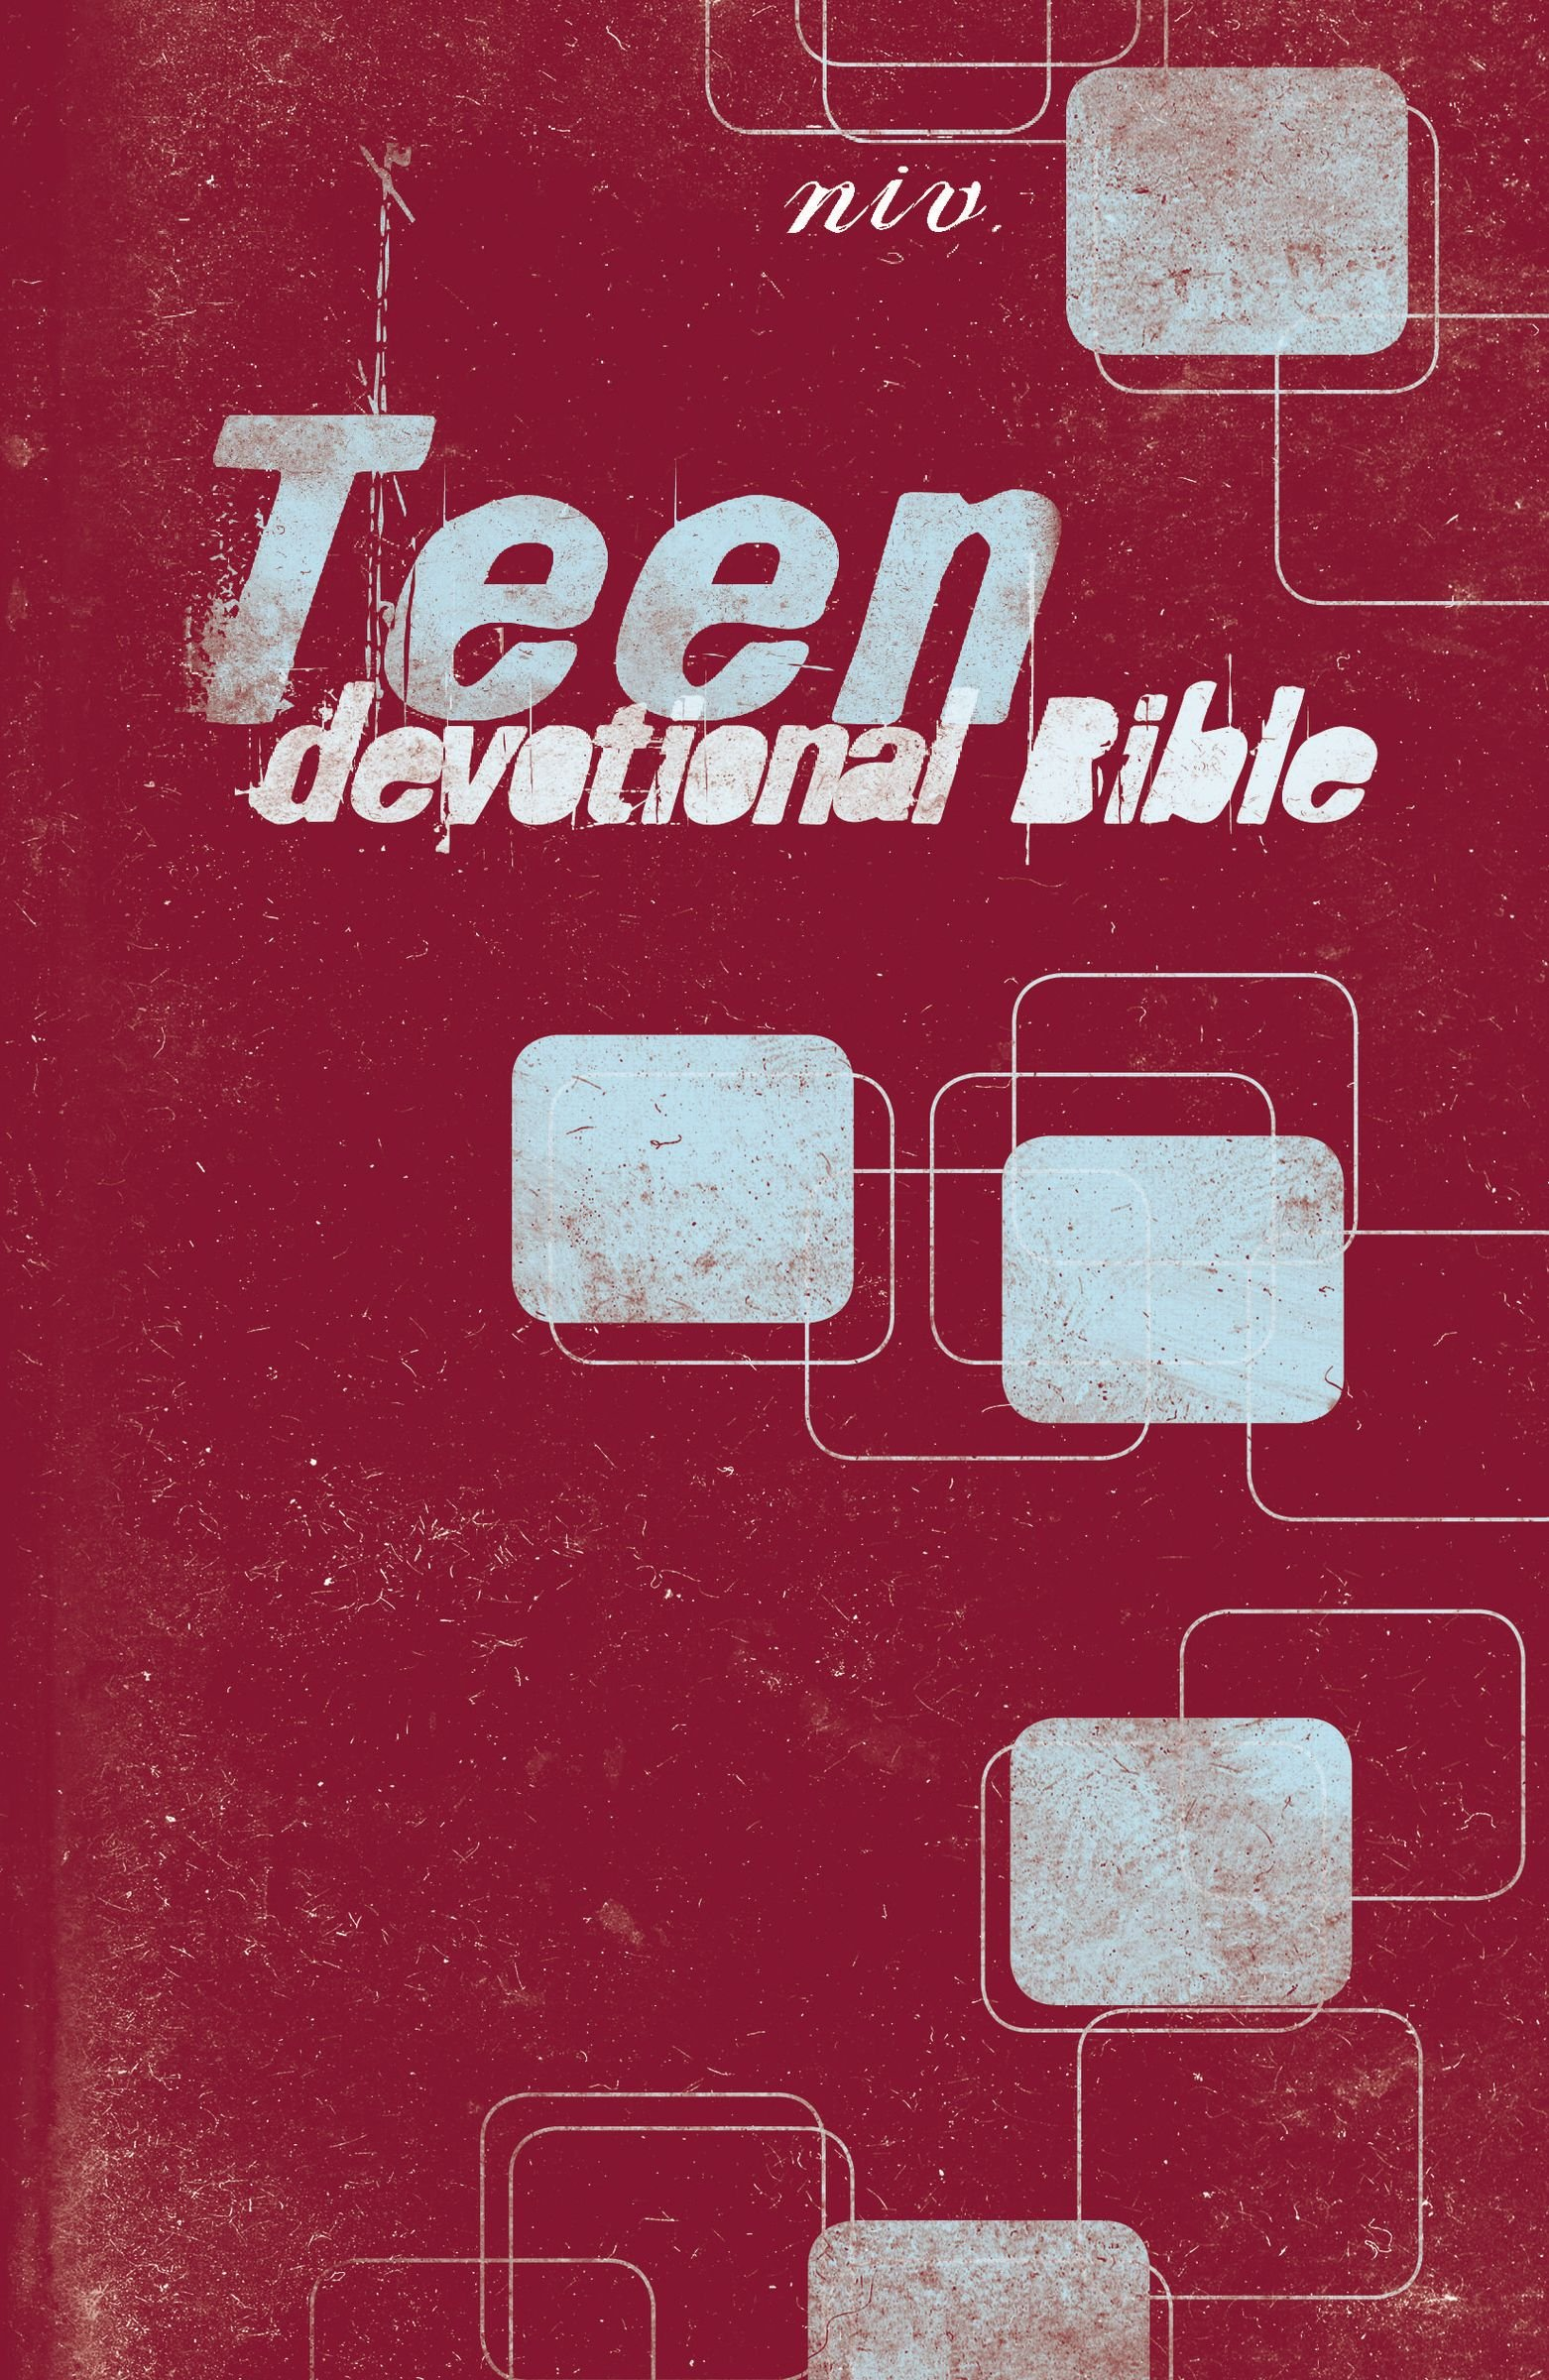 Teen bible devotion